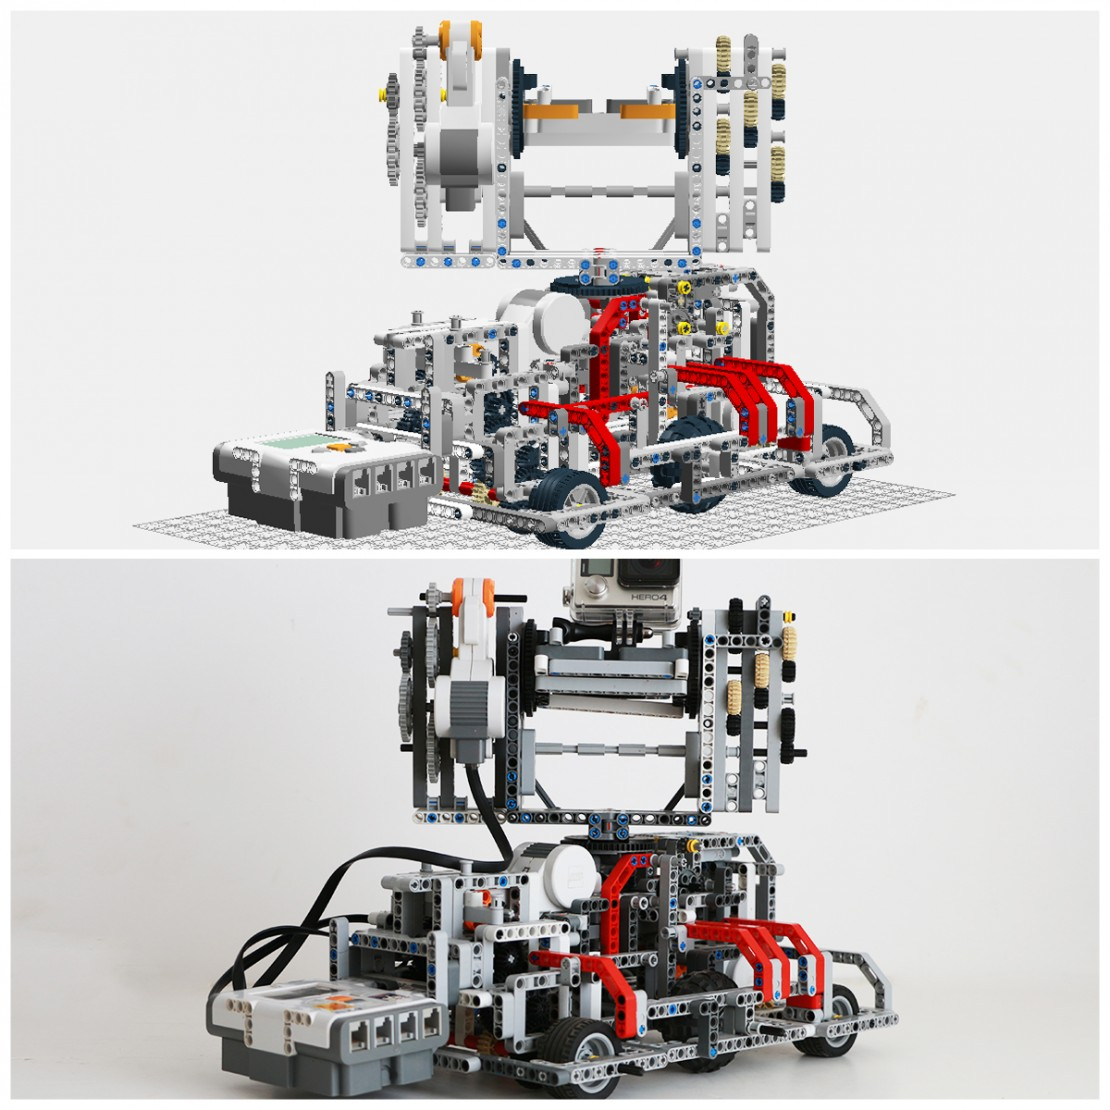 Build Your Own GoPro 3-Axis Motion Control Out of LEGOs